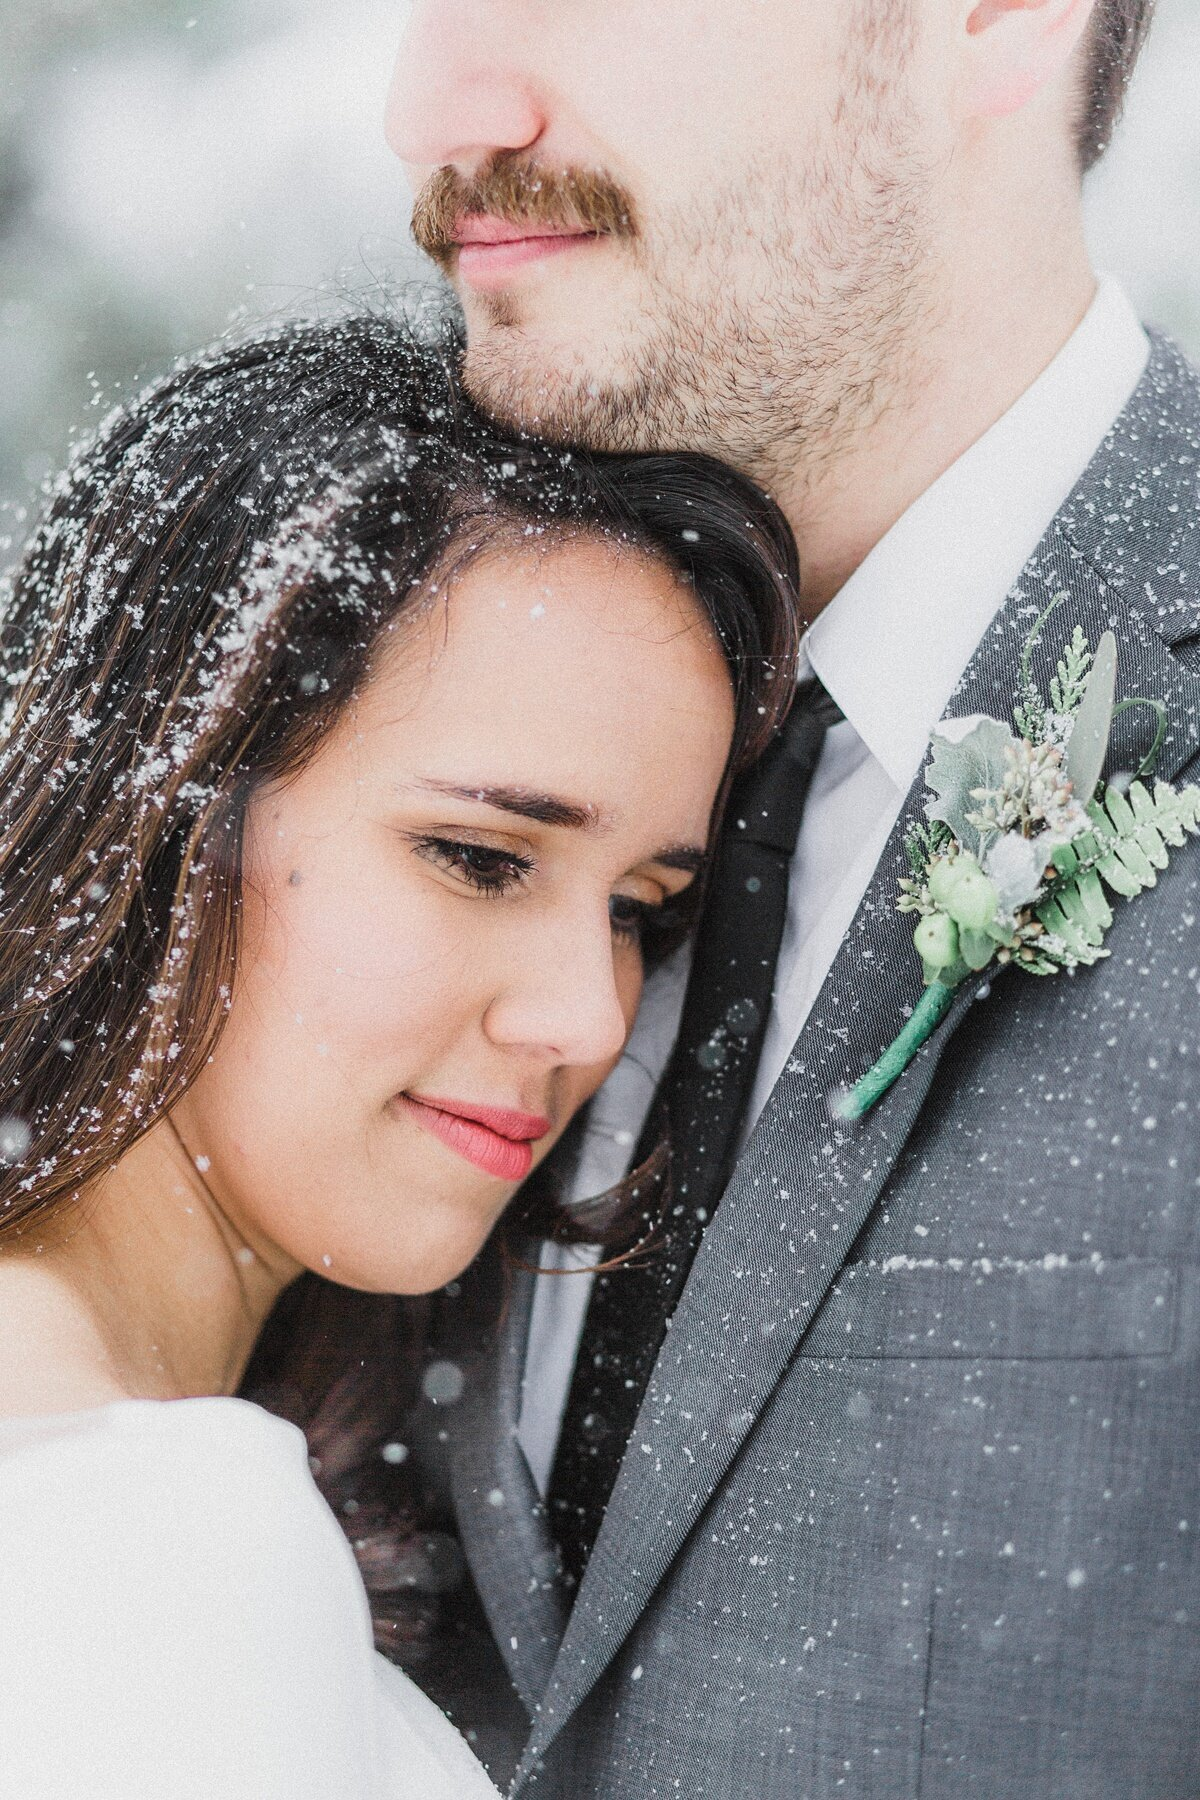 ryan-kelli-winter-wedding_0119